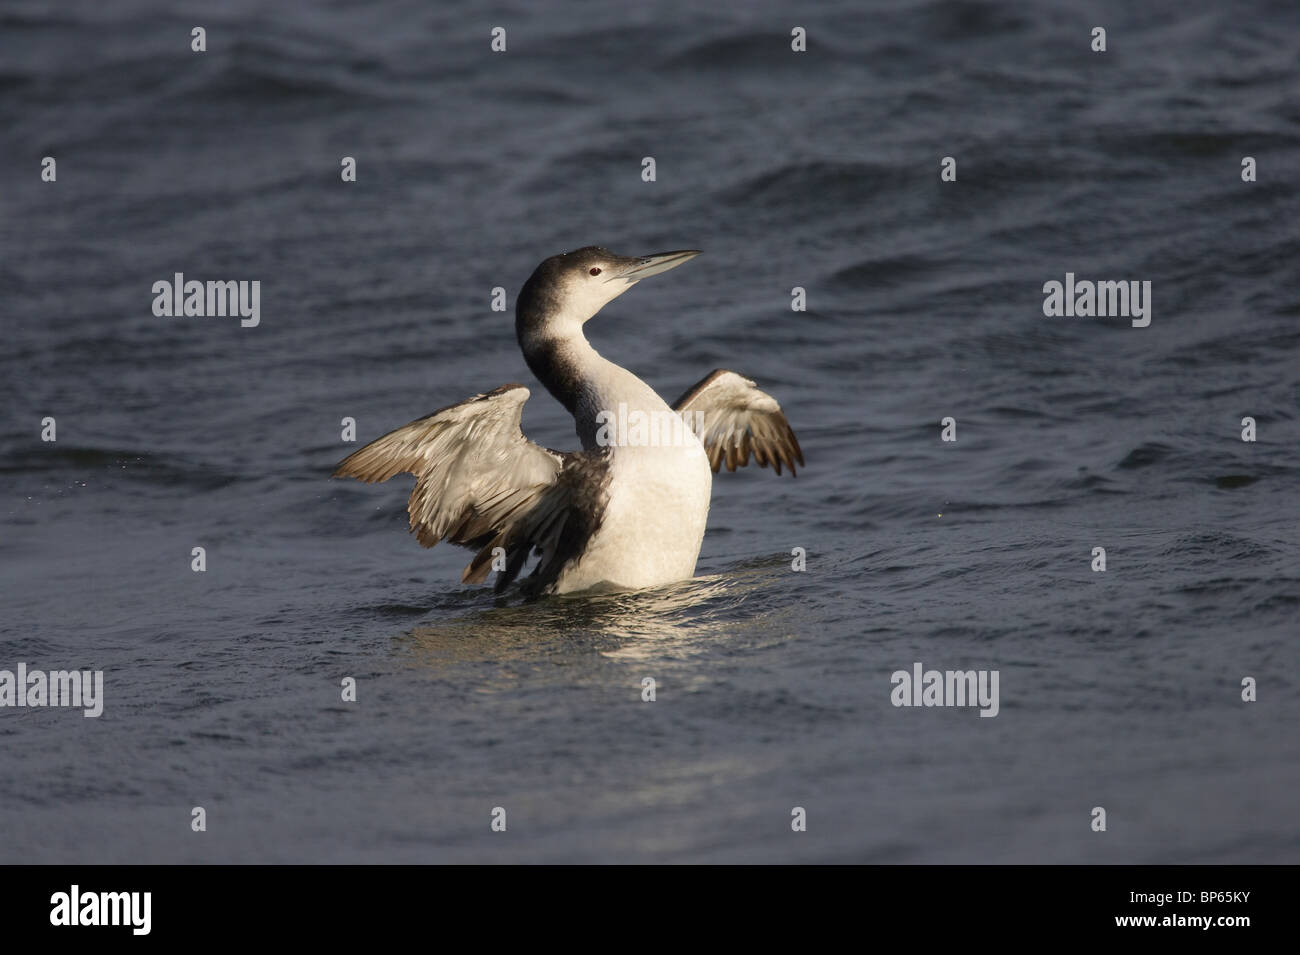 Common Loon in Non-breeding Plumage Beating Its Wings in the Water - Stock Image